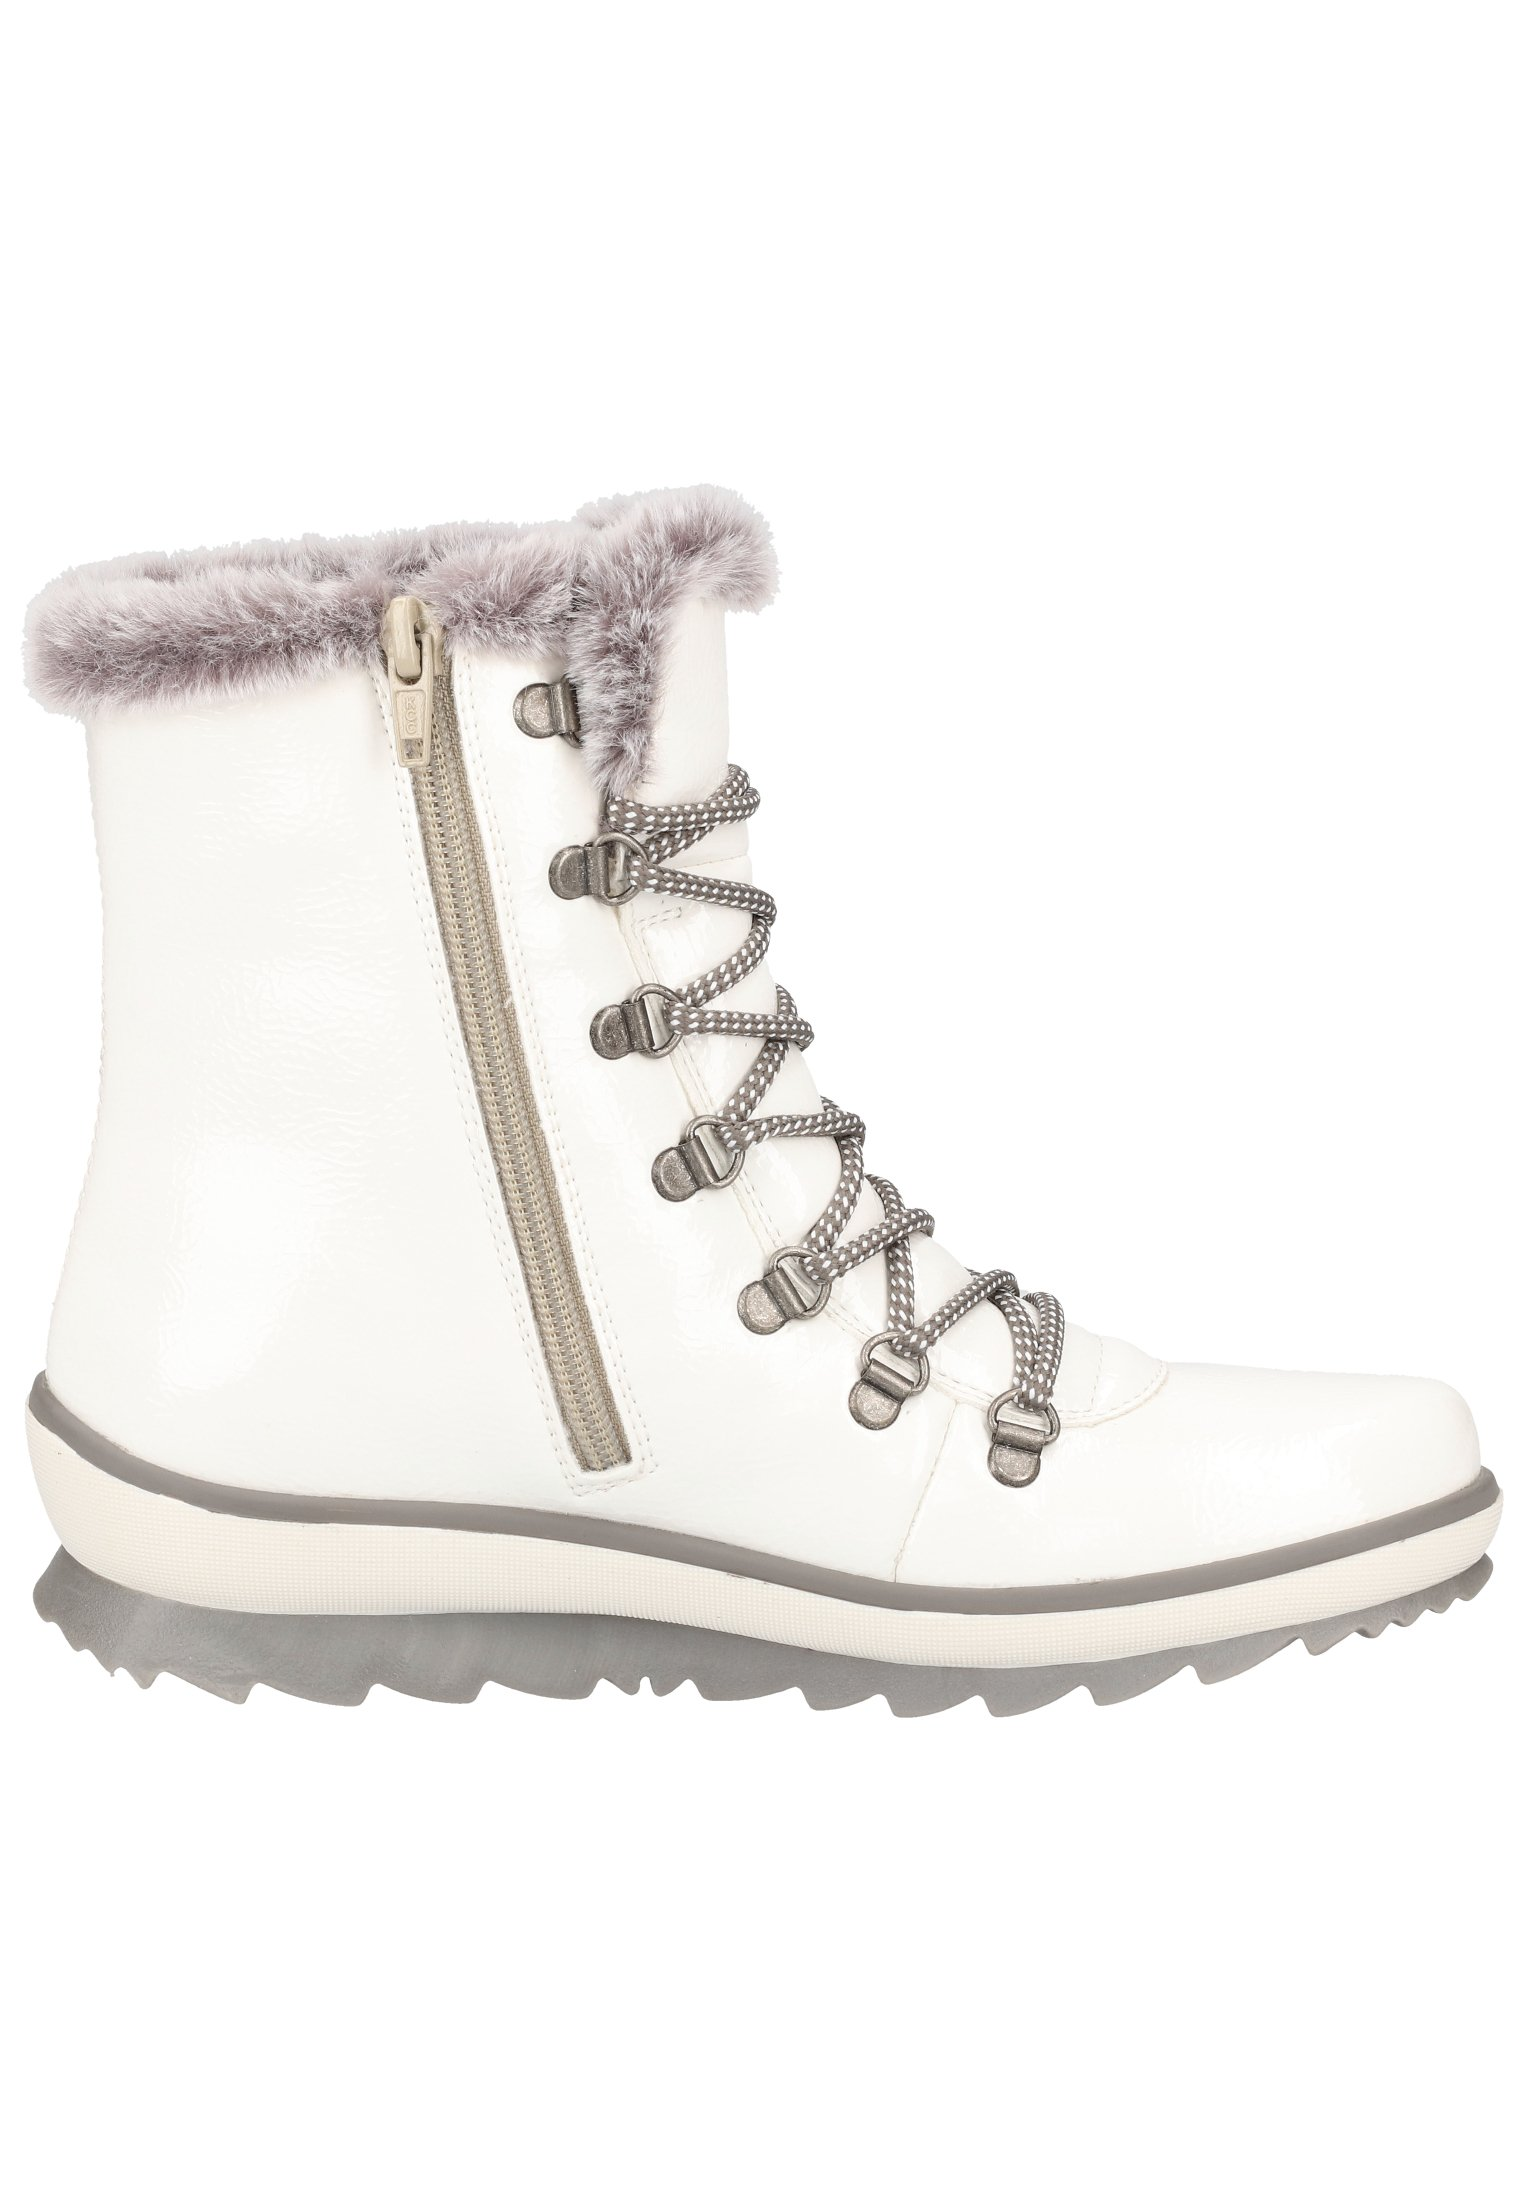 Remonte Snowboot/Winterstiefel white/mouse